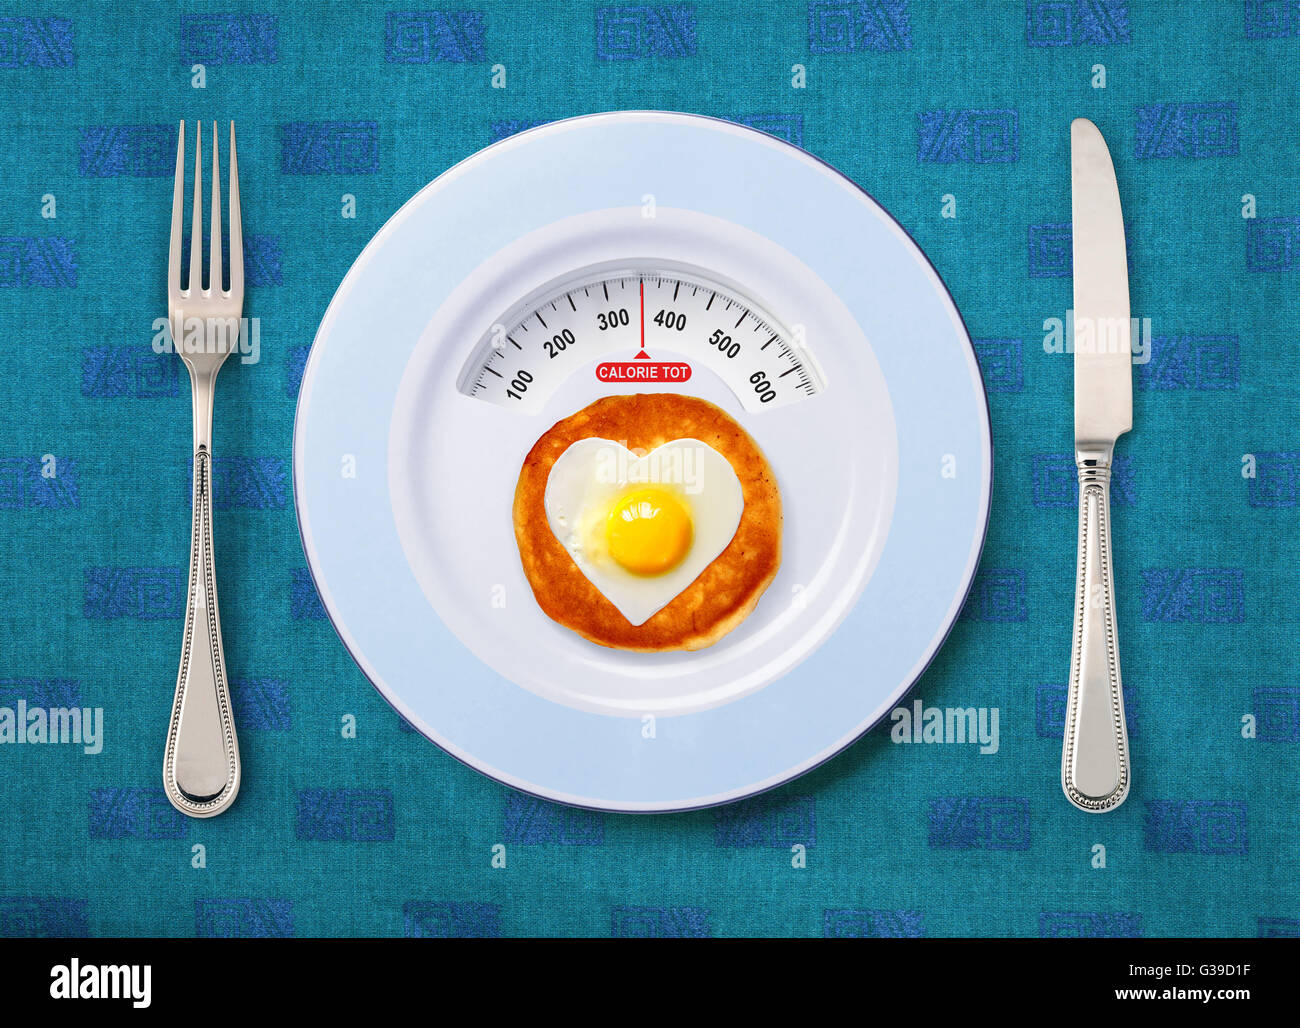 view of calorie tot in fried egg that on white plate - Stock Image